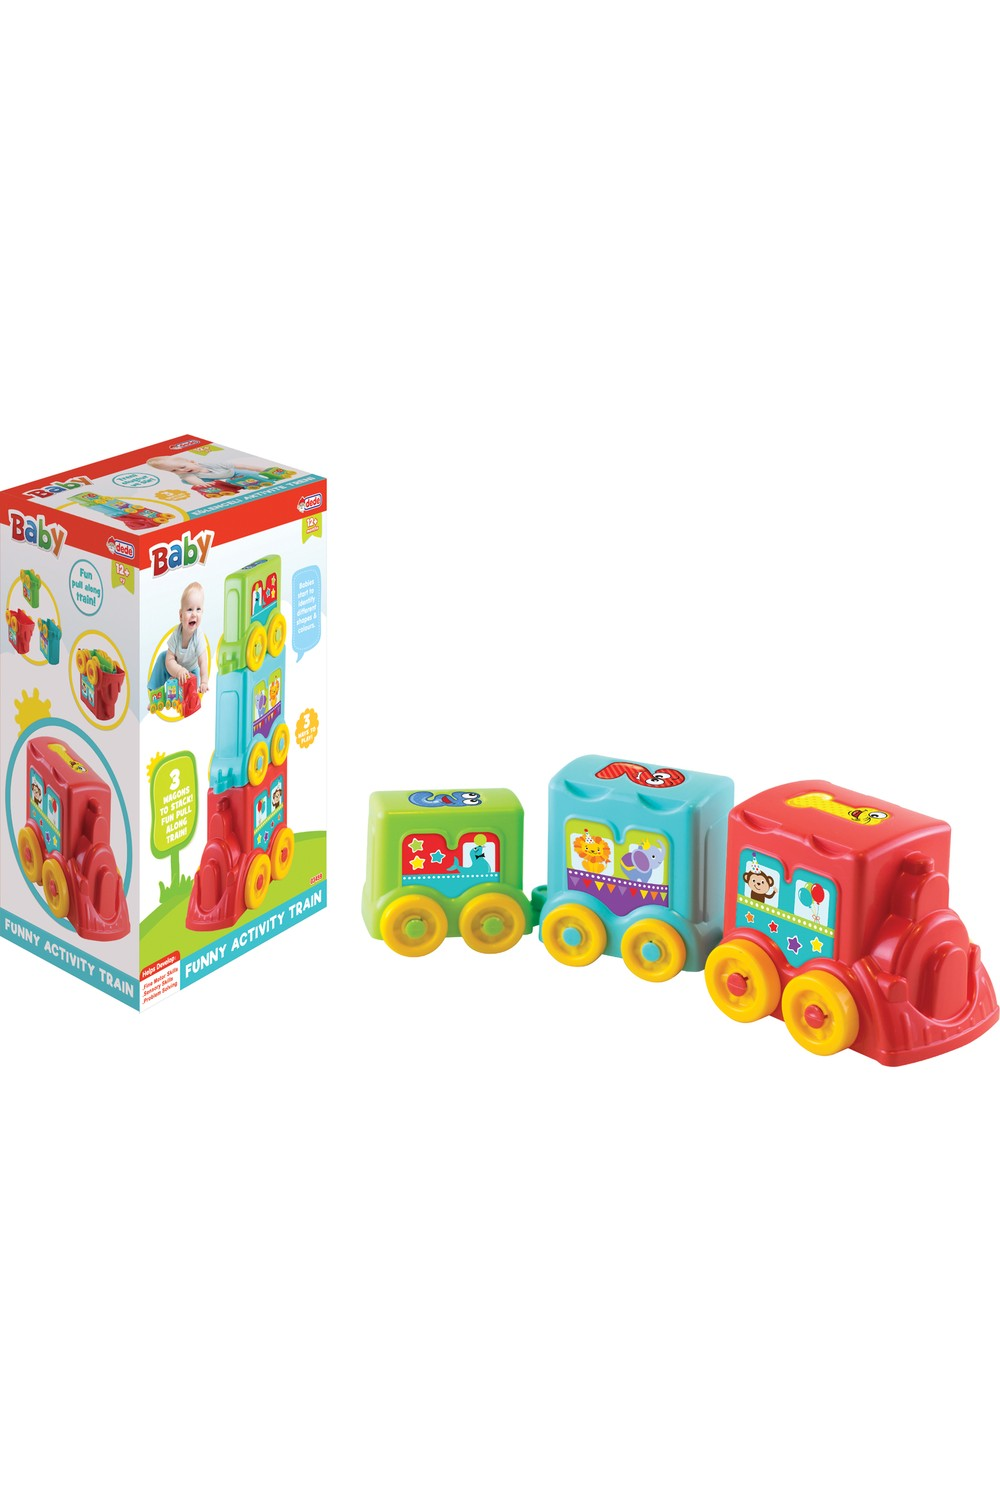 Dede Kids' Toy